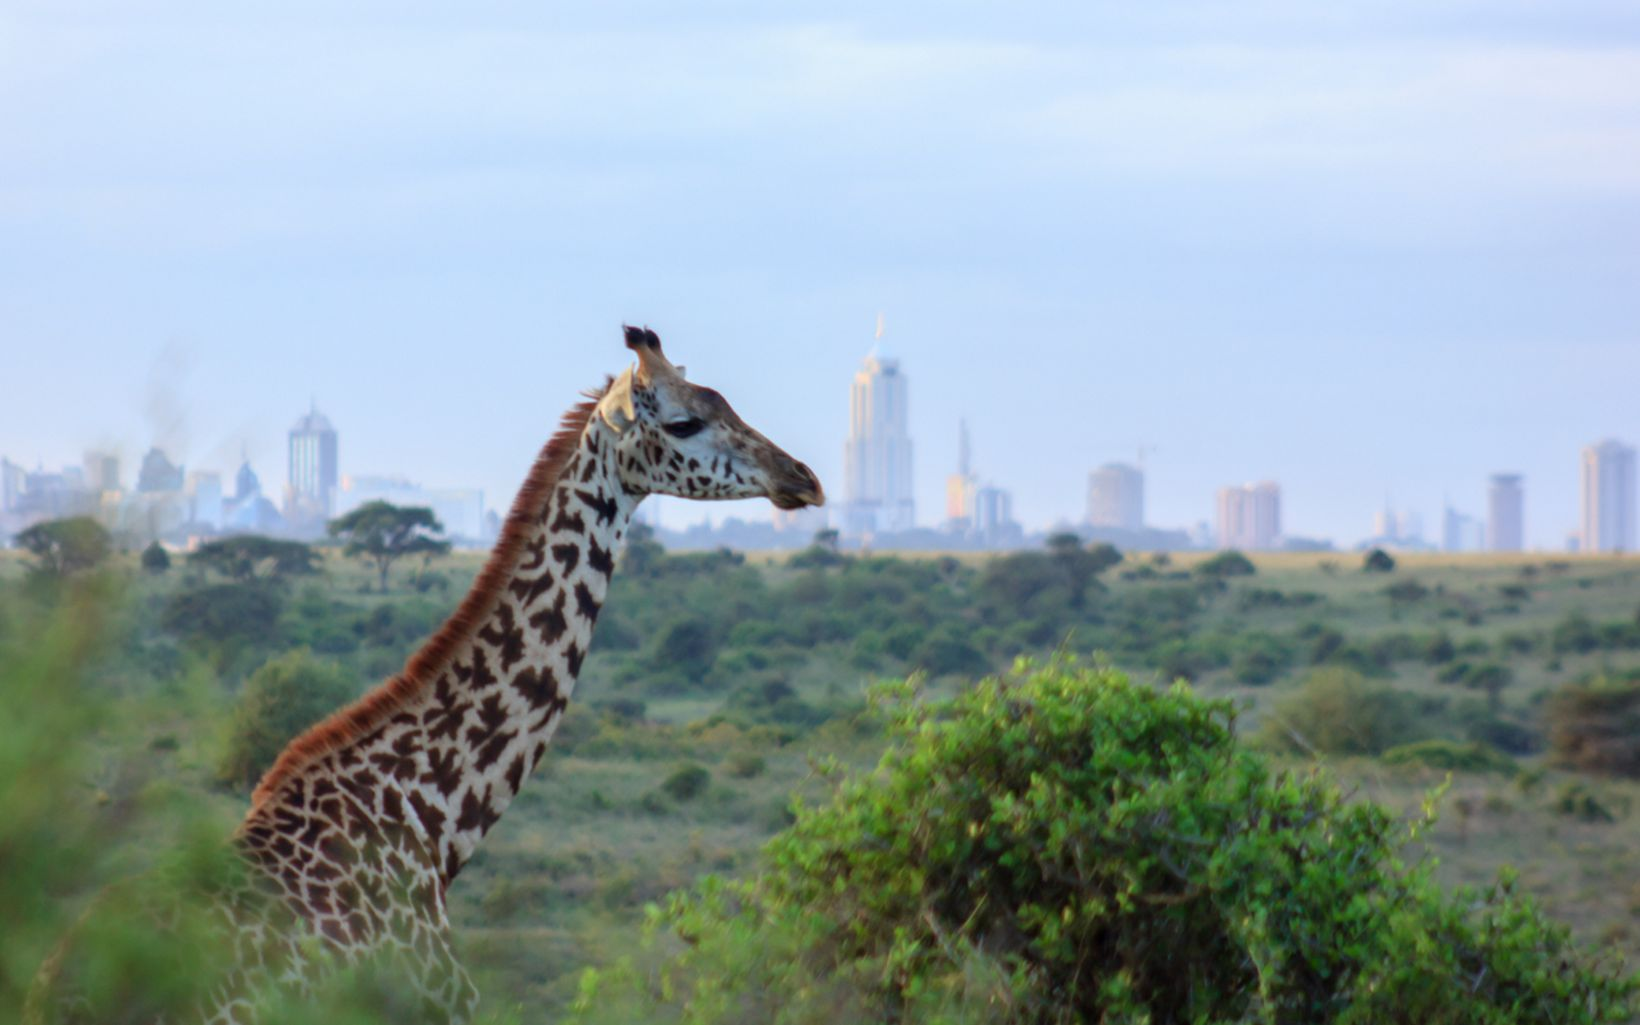 A Masai giraffe overlooking the Nairobi skyline at the Nairobi National Park, Kenya.